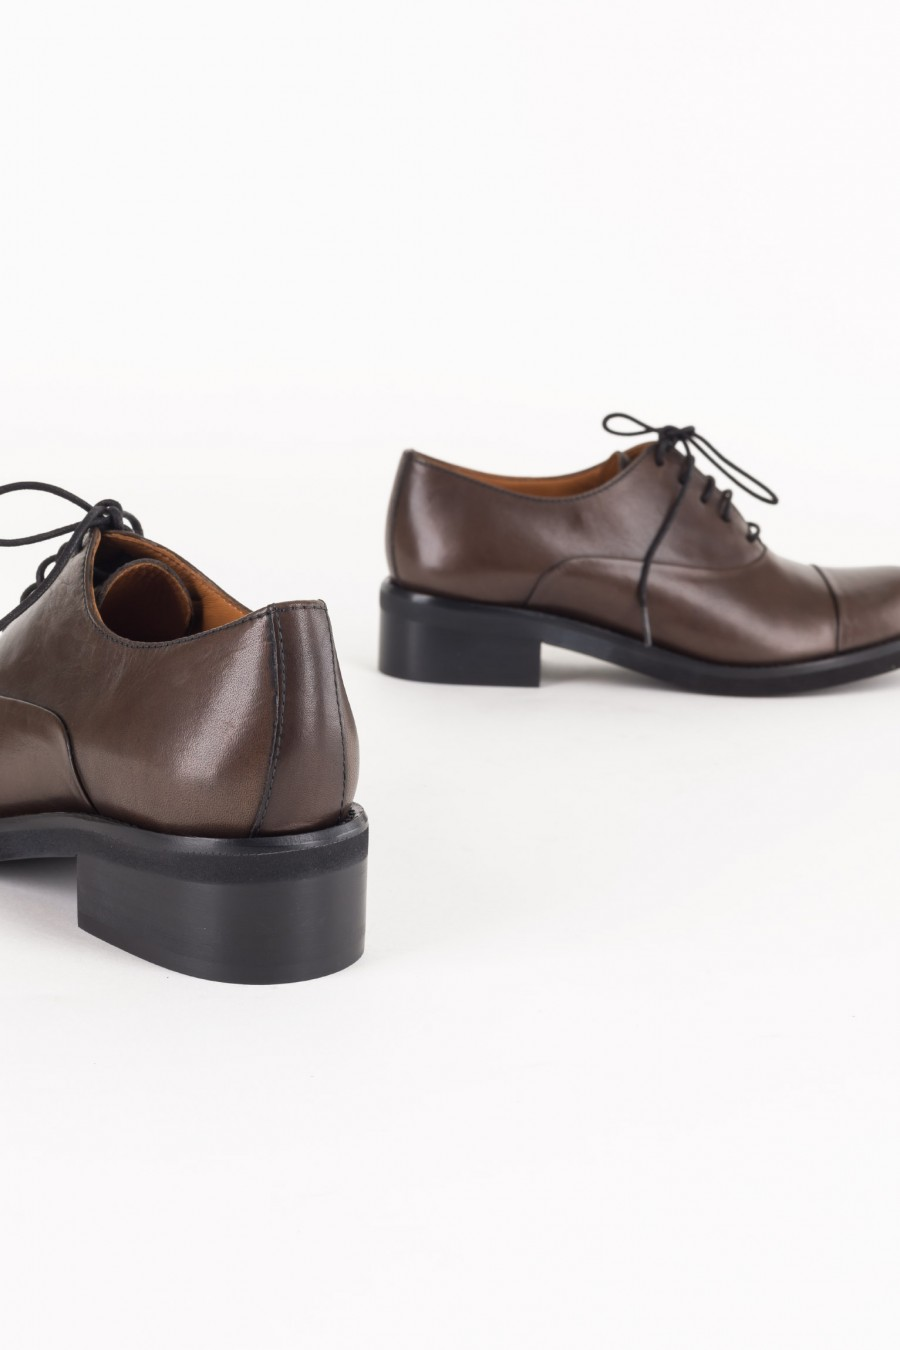 Laced brown shoes